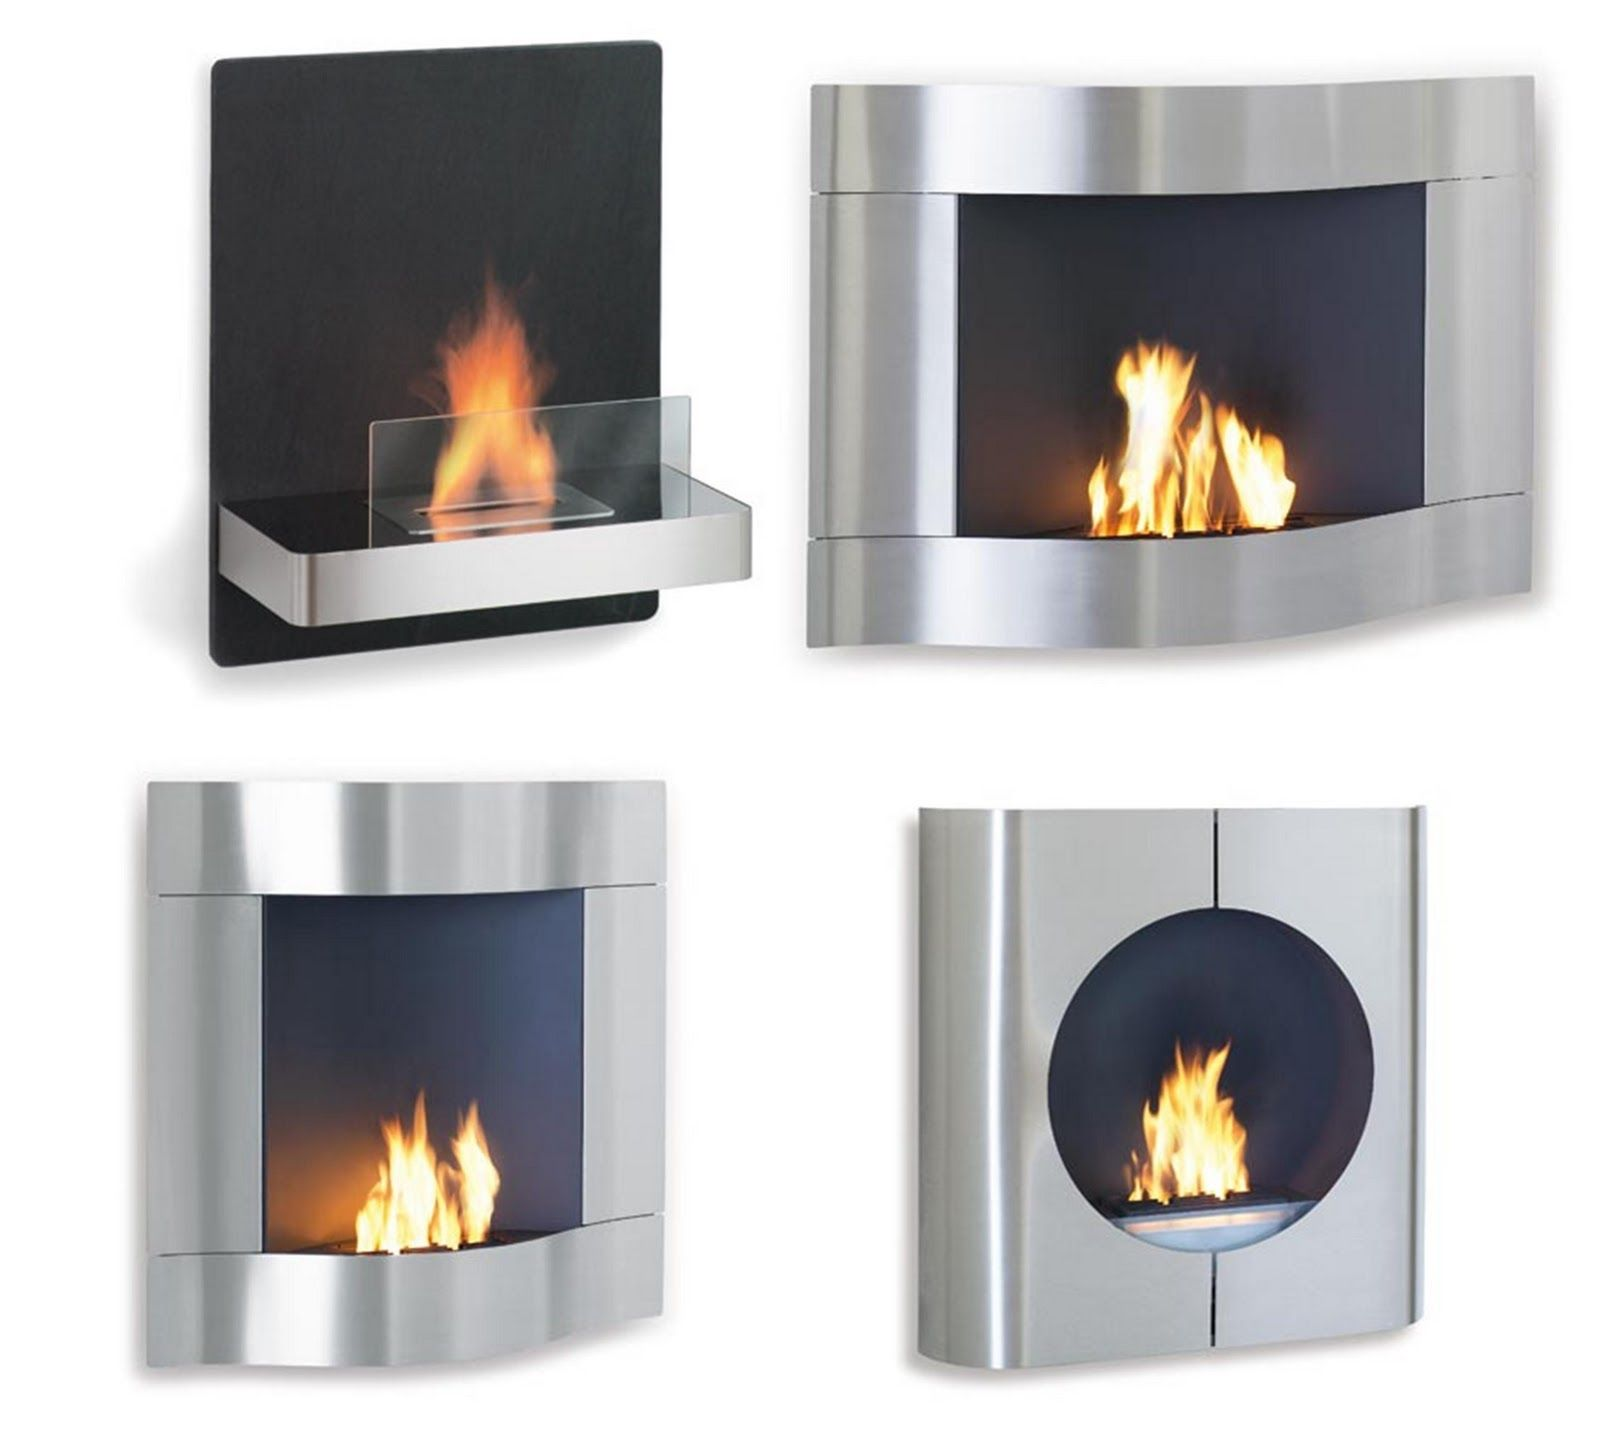 Time2Design Ventless Fireplace Chimeneas, Natural